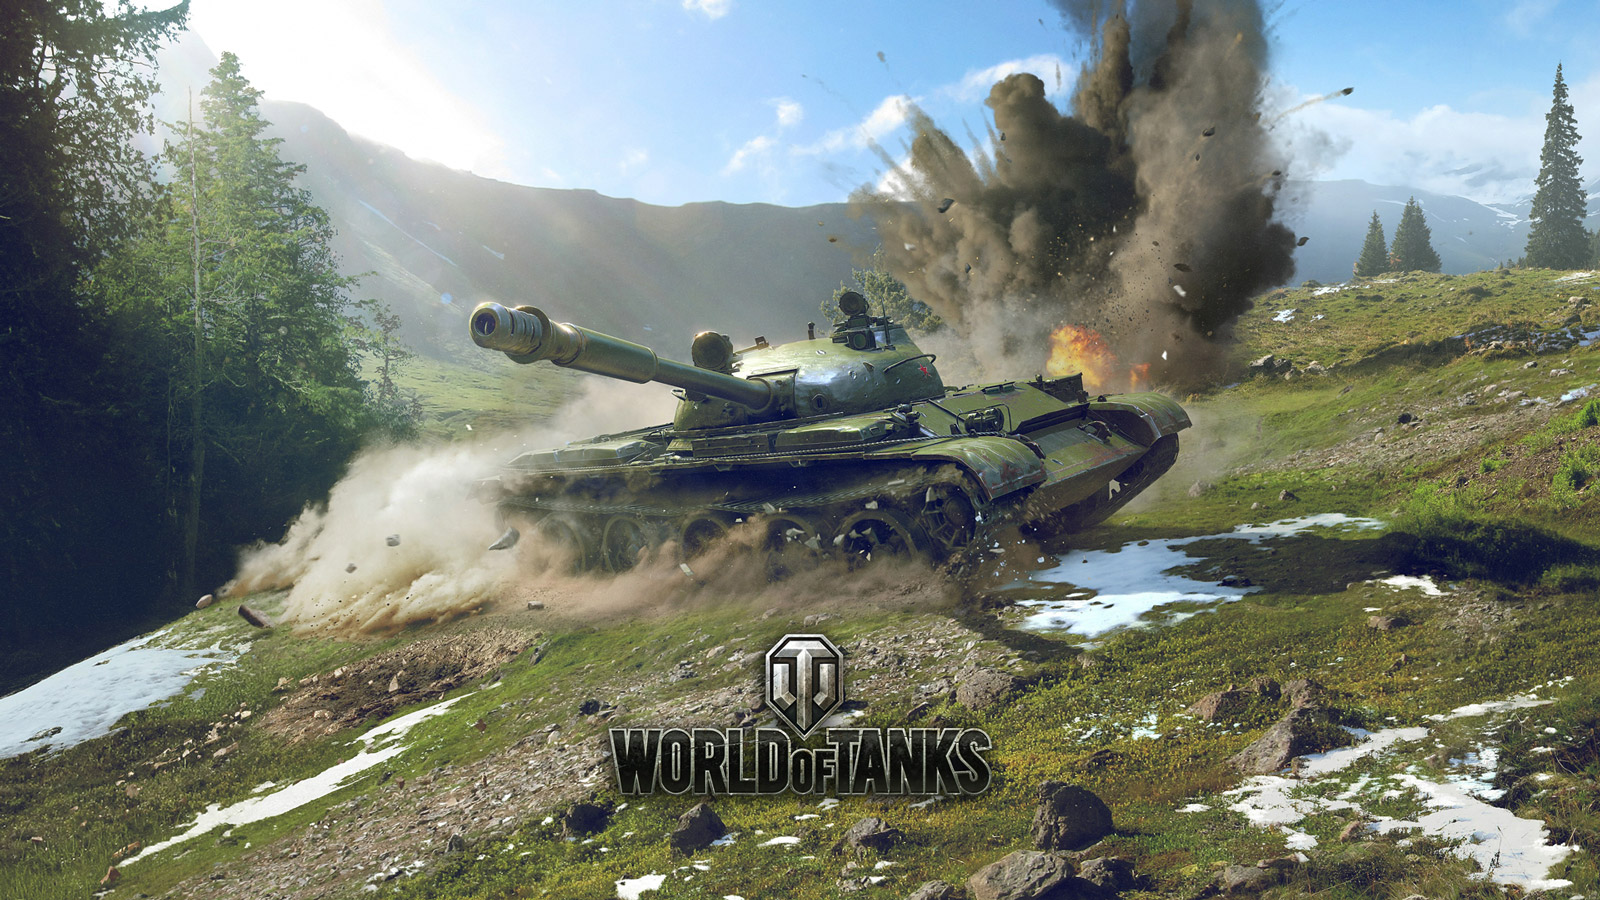 Free World of Tanks Wallpaper in 1600x900